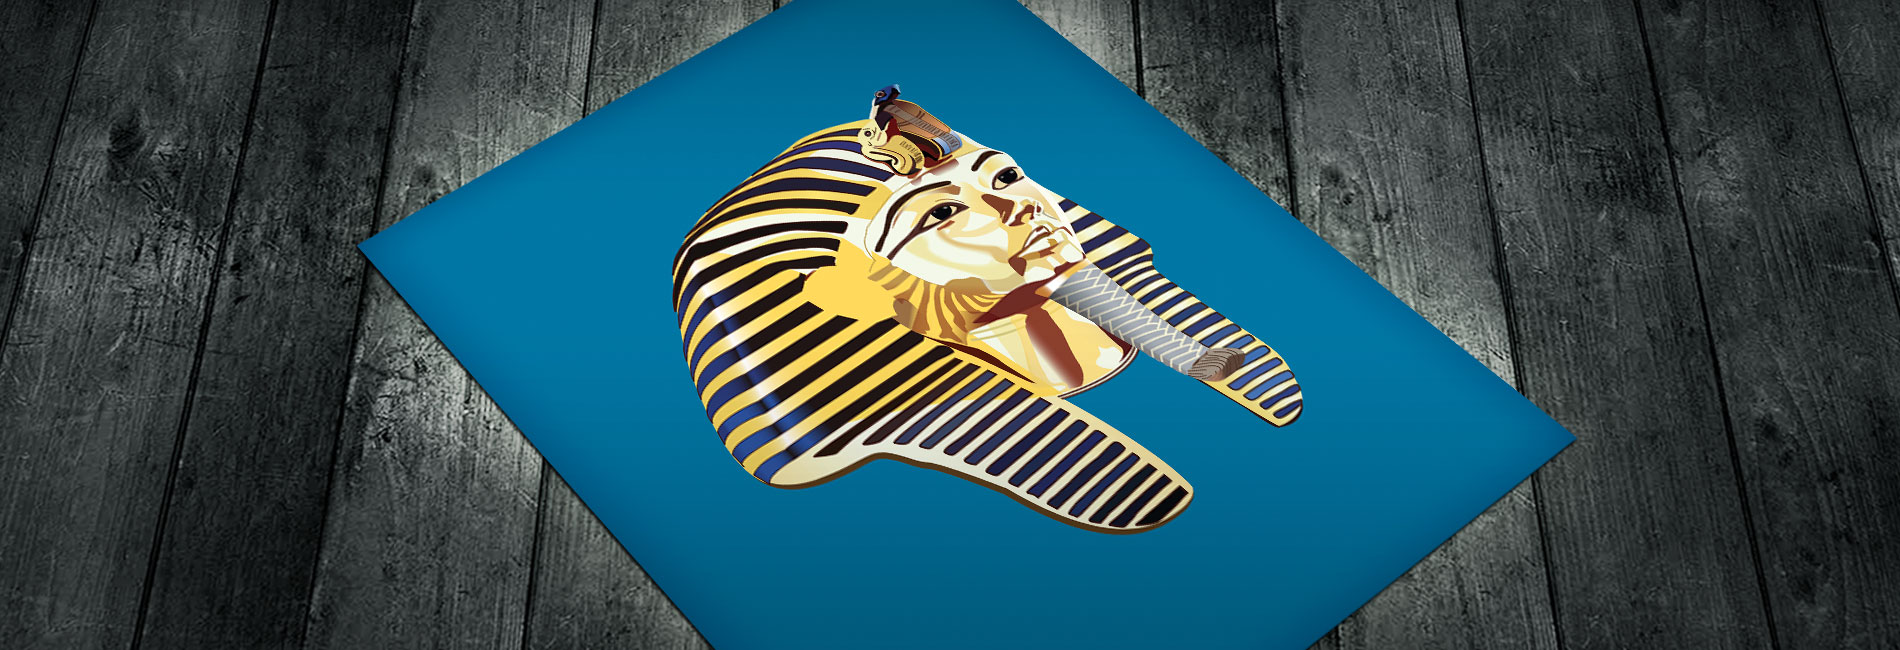 tut digital illustration